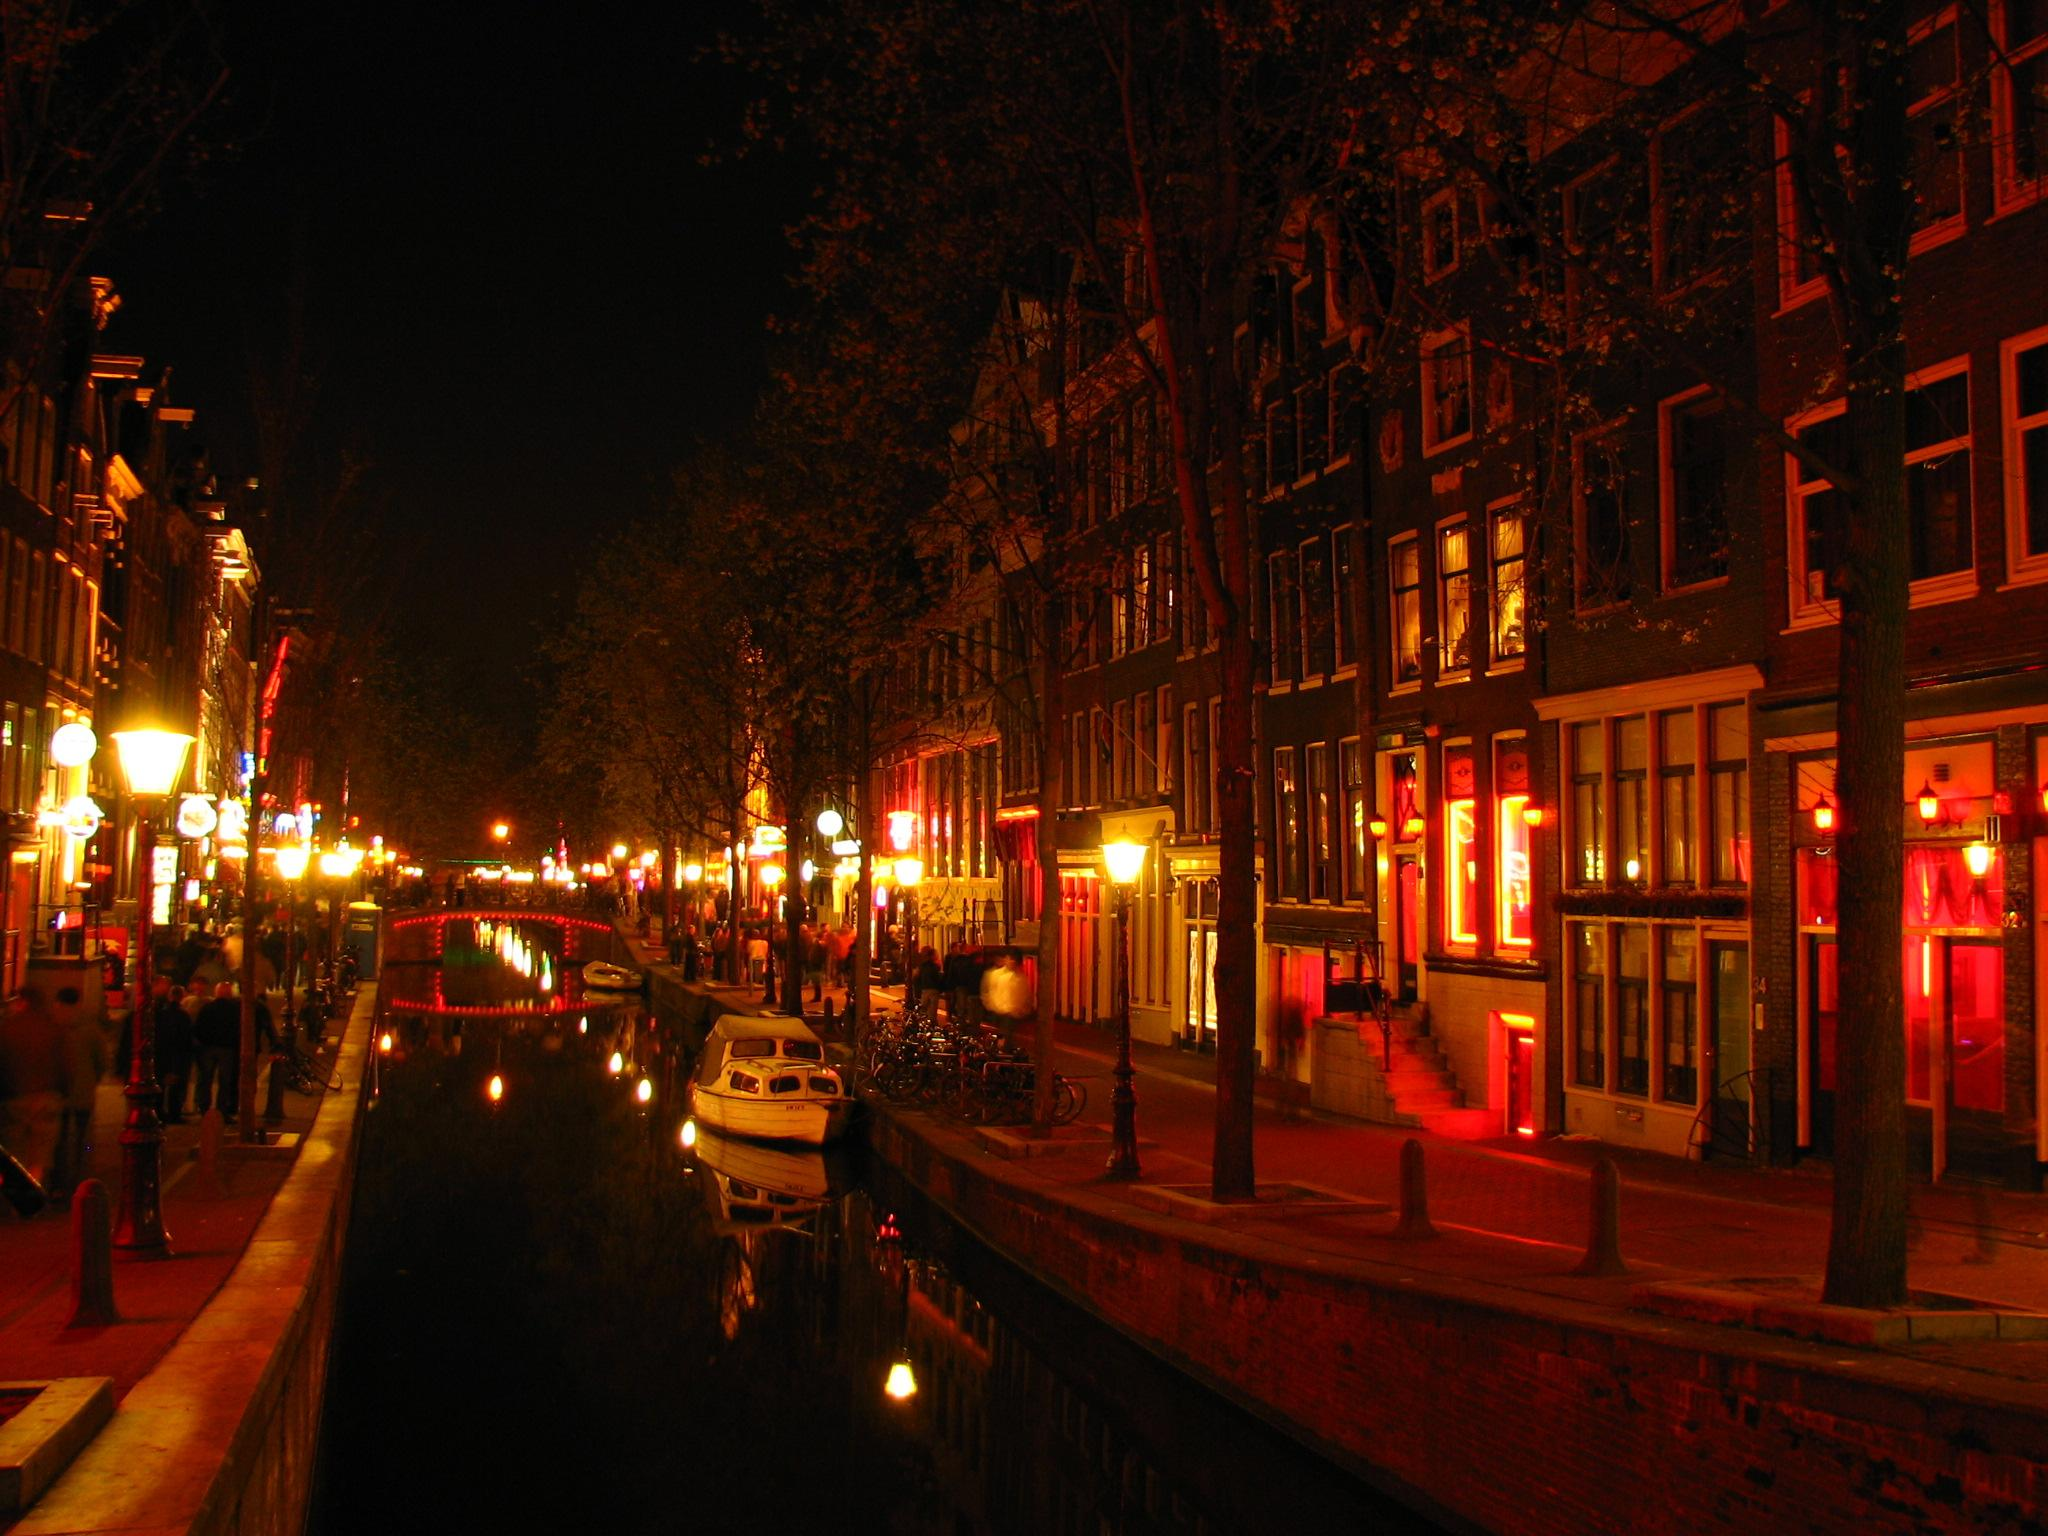 Red light district, Amsterdam : pics